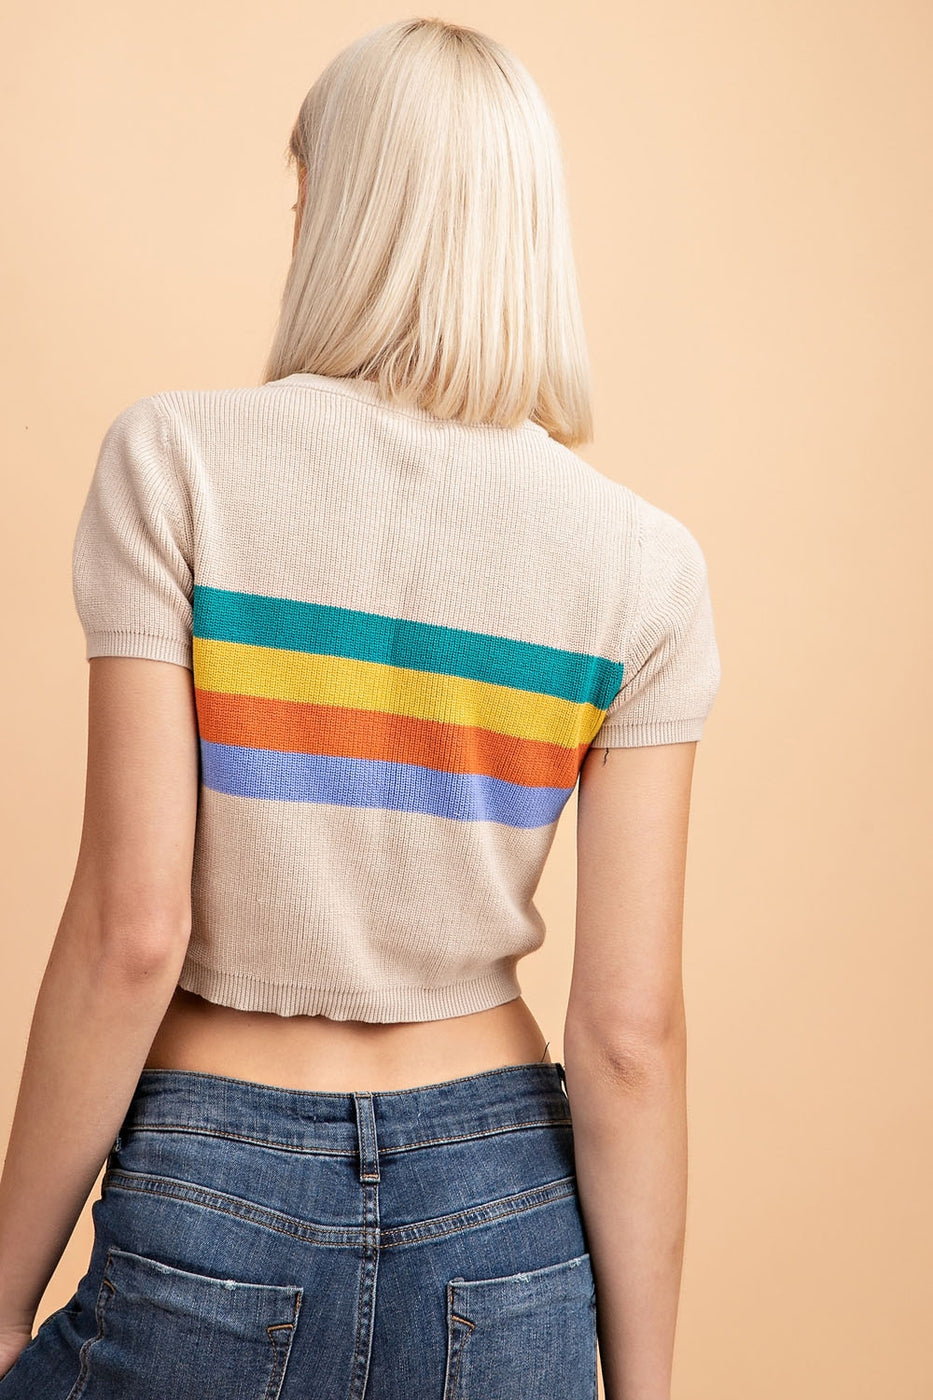 Short Sleeve Colorblock Sweater Top Siin Bees